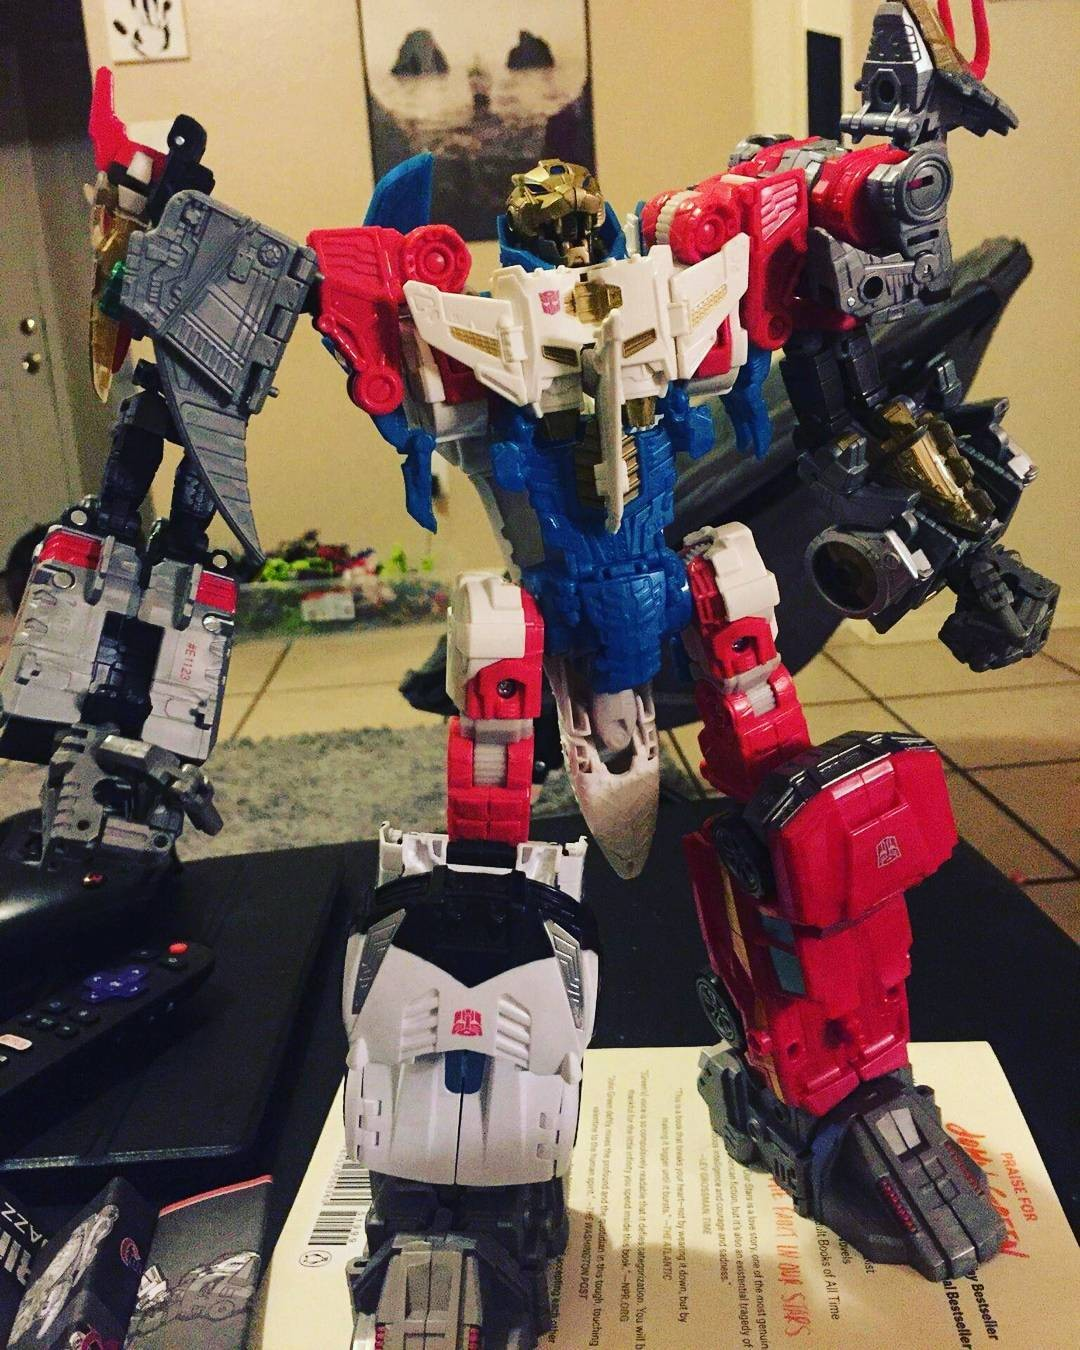 Transformers News: More In-Hand Images of Transformers Power of the Primes Wave 1 Deluxes: Slug, Swoop, Dreadwind